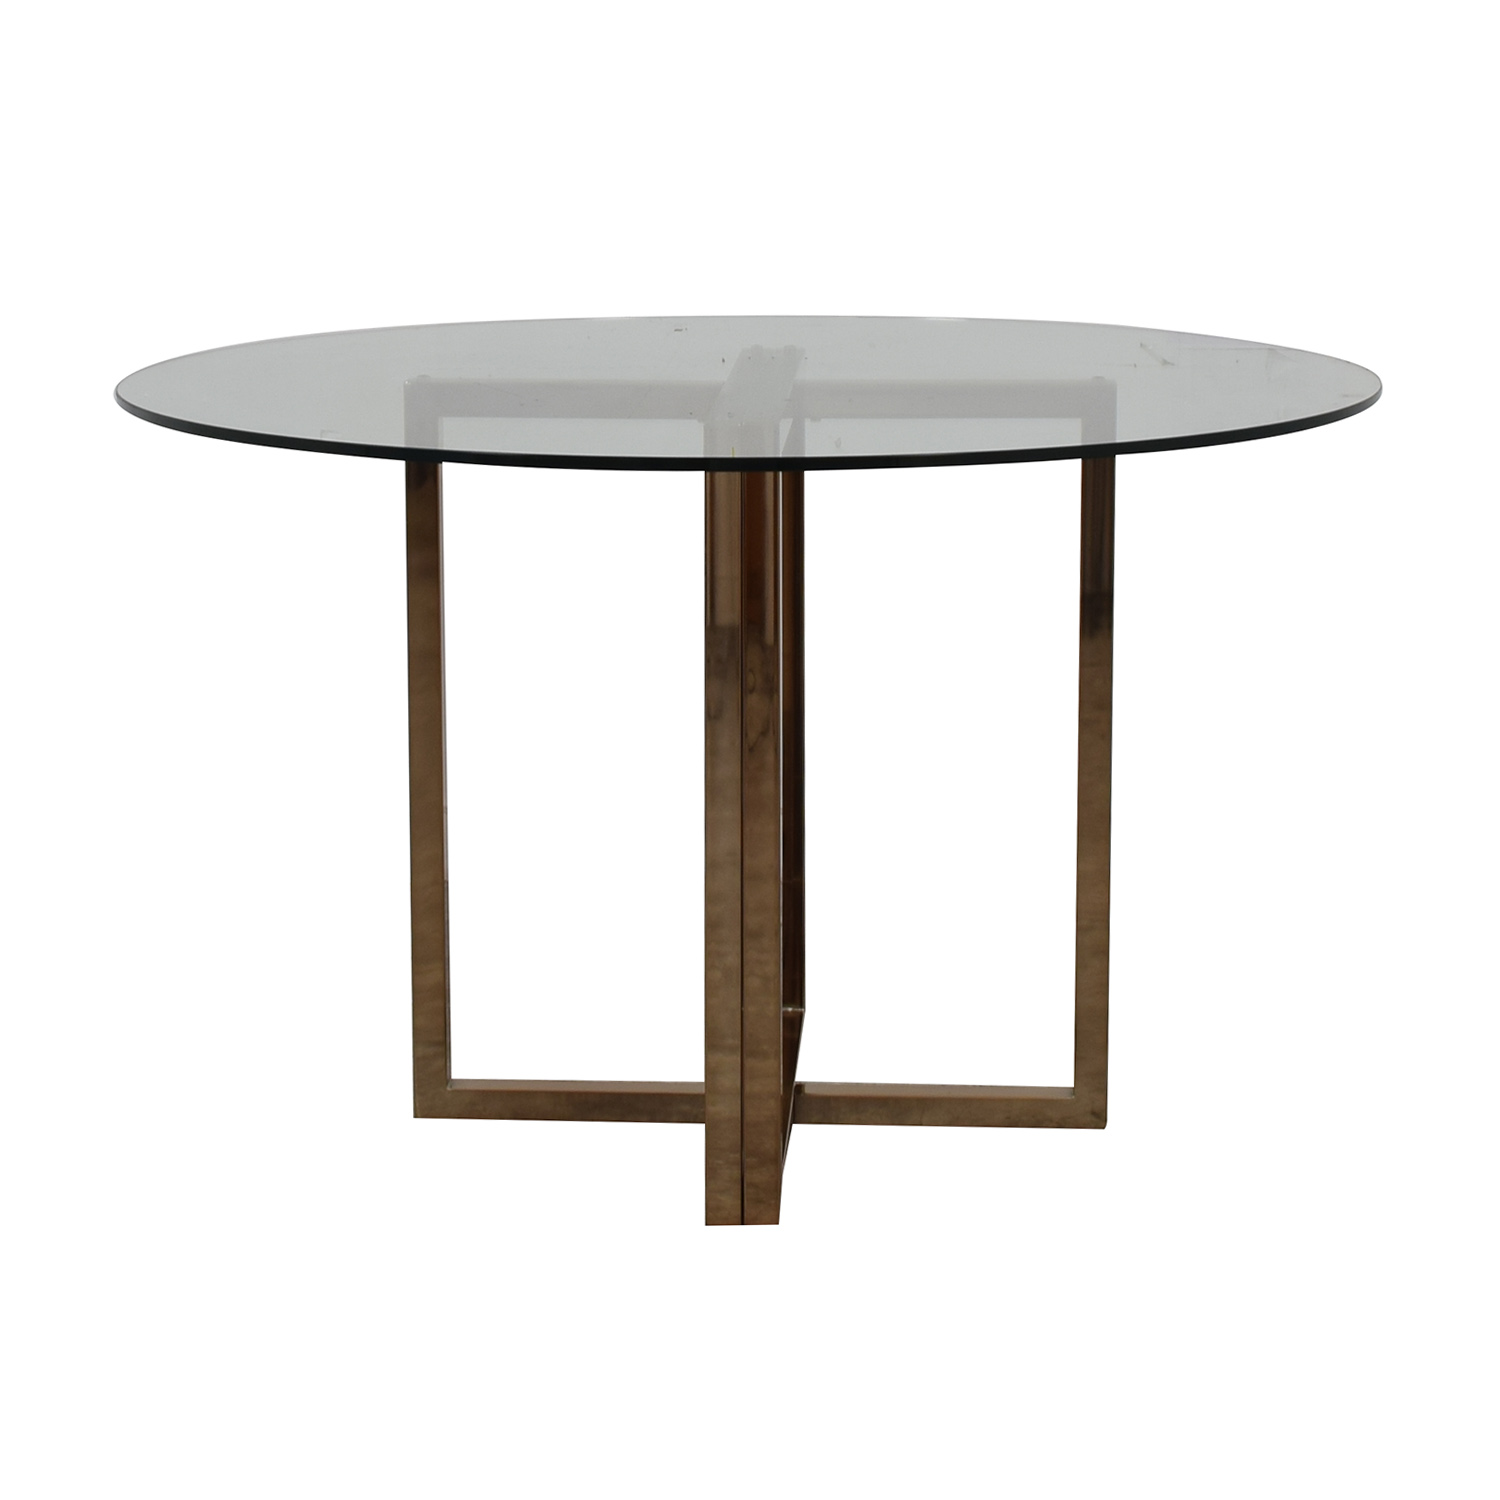 CB2 Glass and Chrome Round Dining Table / Dinner Tables